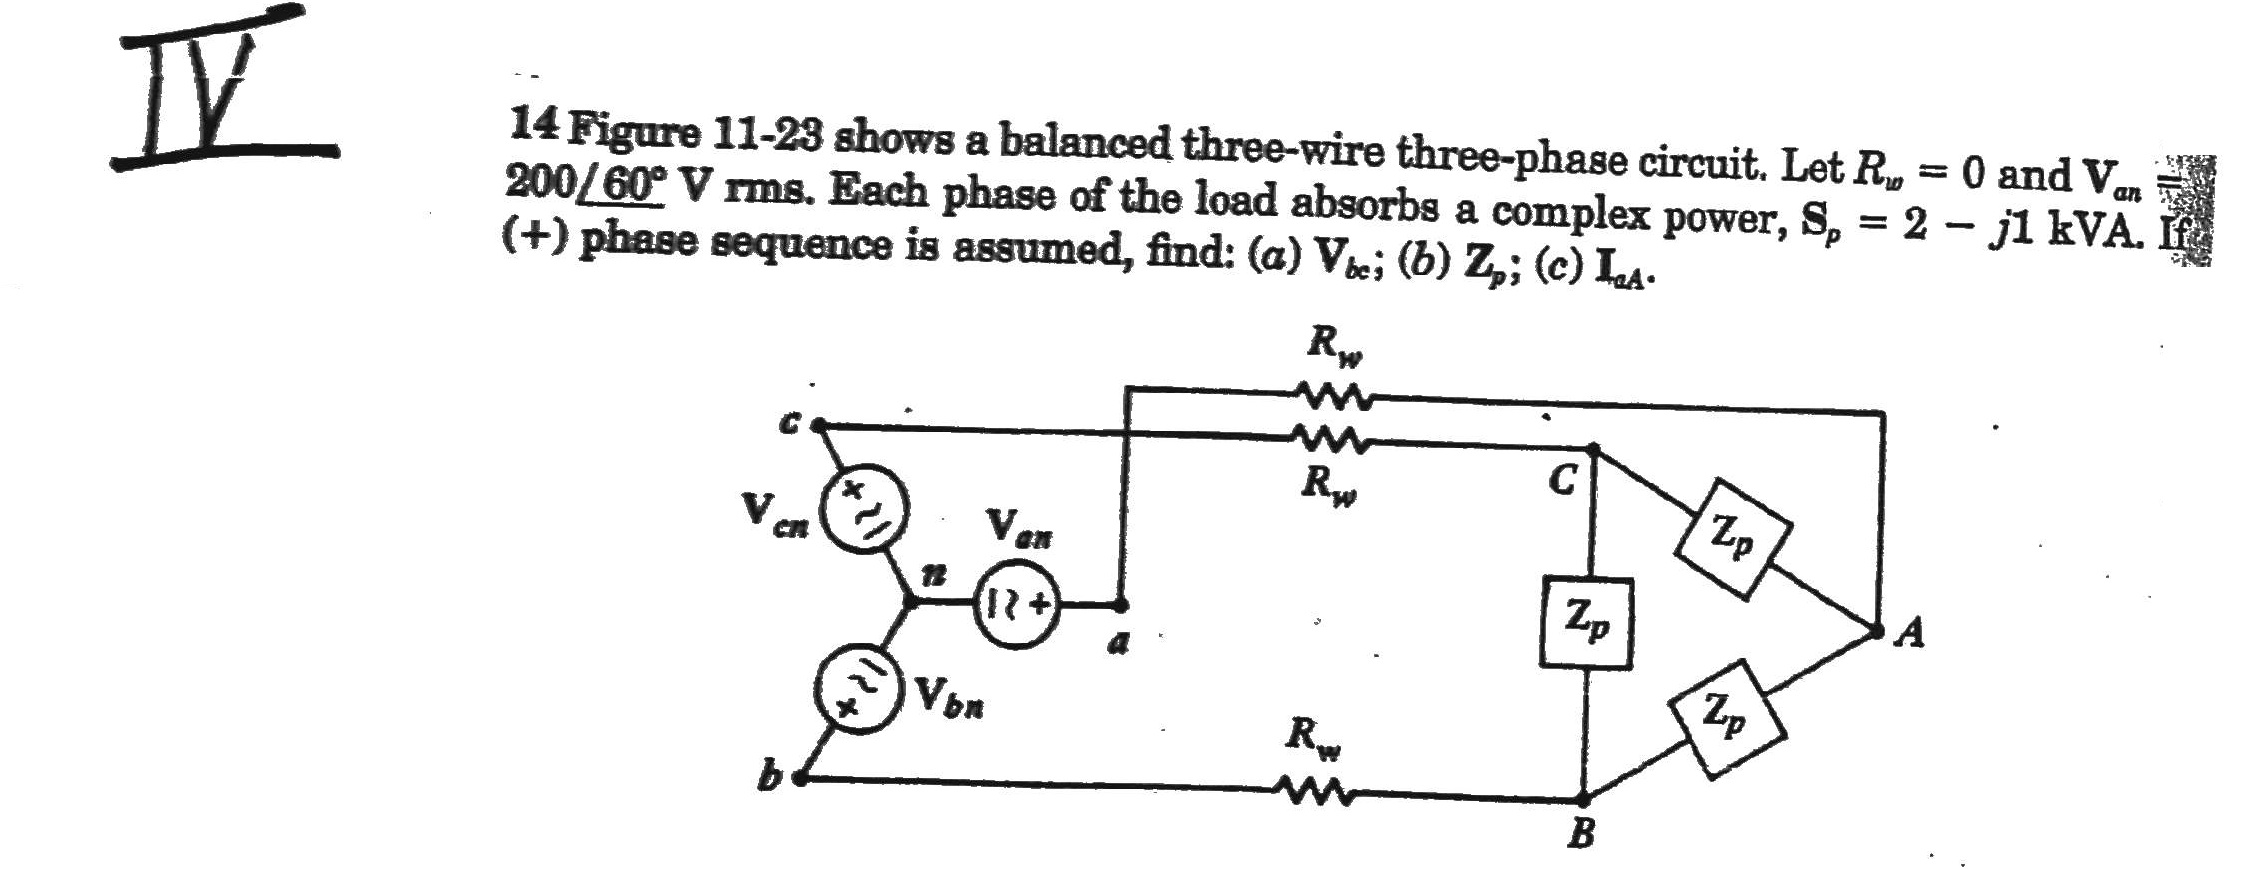 14 Figure 11-29 shows a balanced three-wire three-